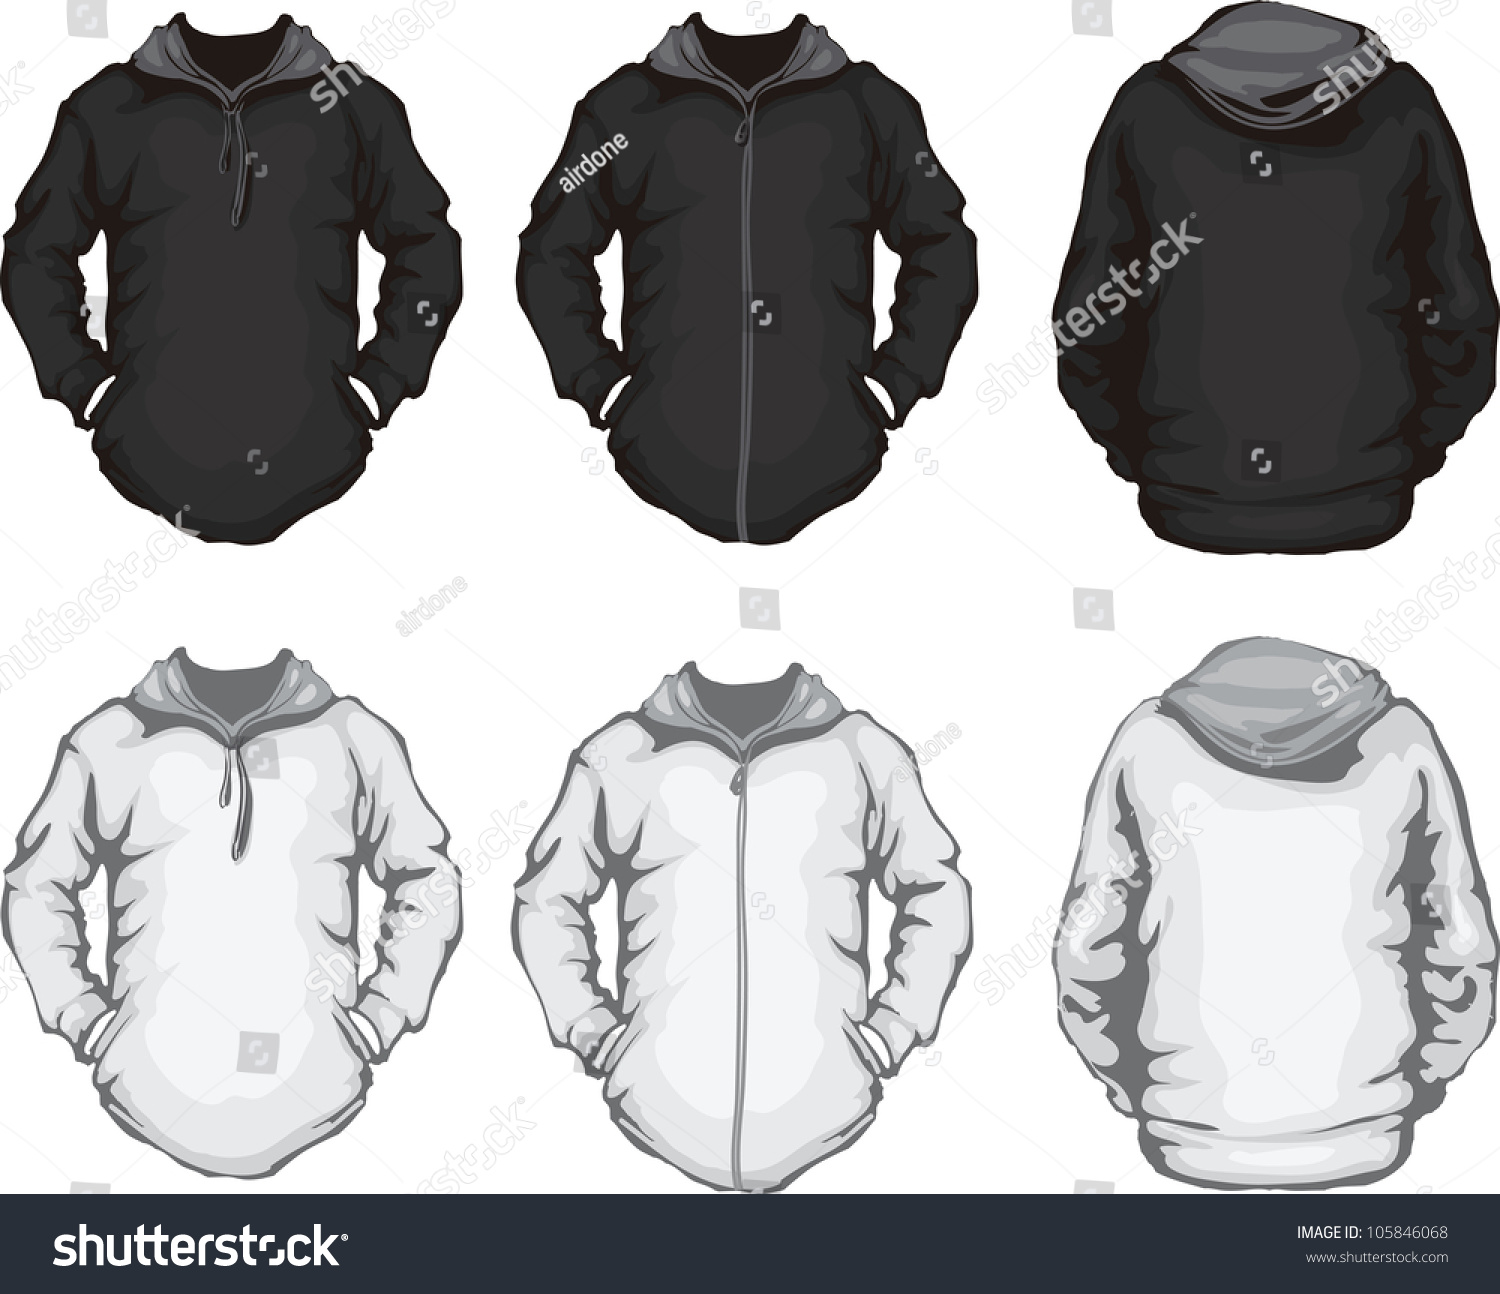 Shirt hoodie design - Vector Illustration Of Black White Men S Hoodie Sweatshirt Template Front And Back Design Check